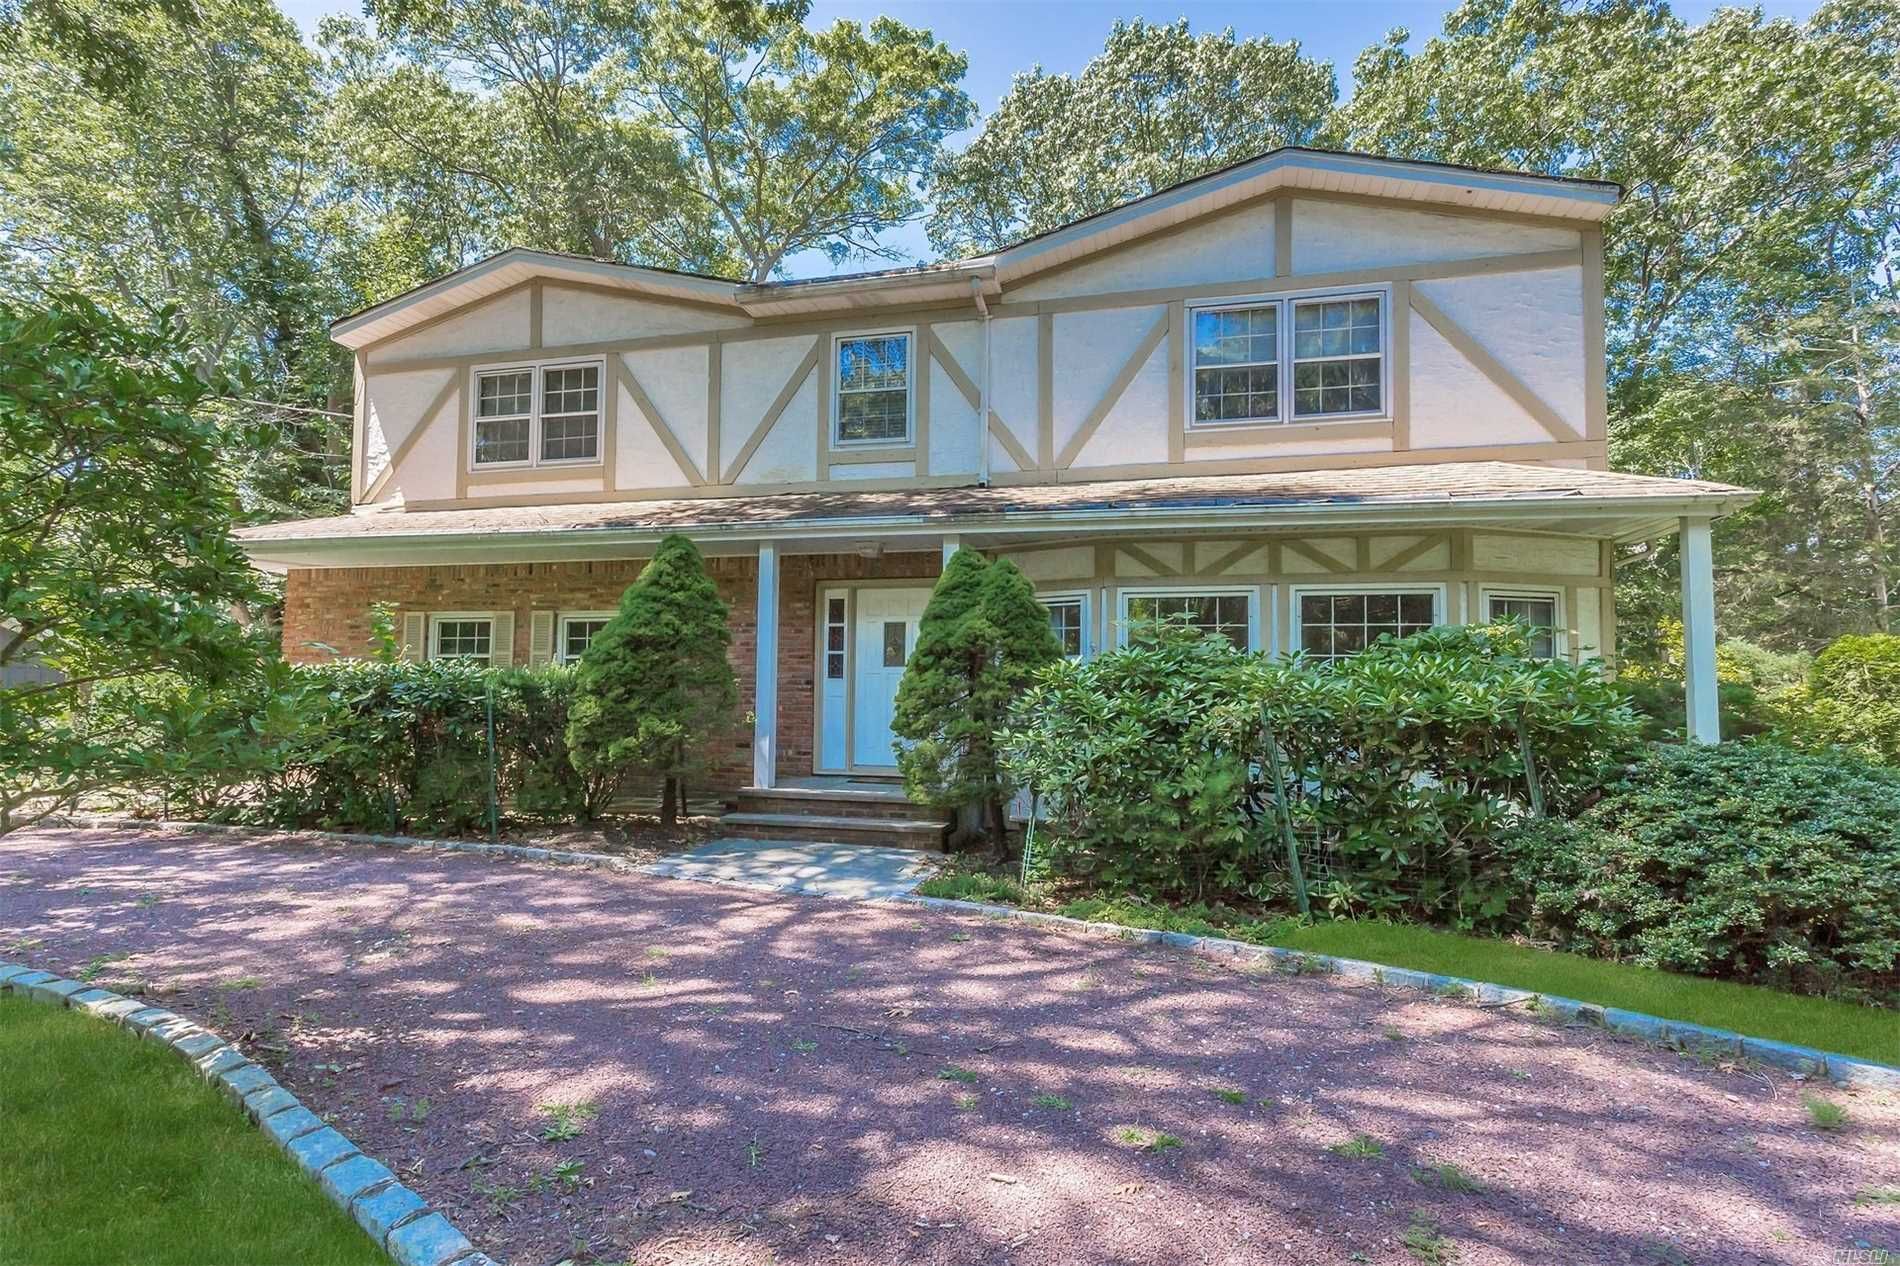 Lovely Center Hall Colonial Located In Million Dollar Area!~ 4 Large Bedrooms With Possible 5th Bedroom, Hw Floors,  Cac, 2 Car Attached Garage, Circular Driveway, Ig Pool. Must See!!~